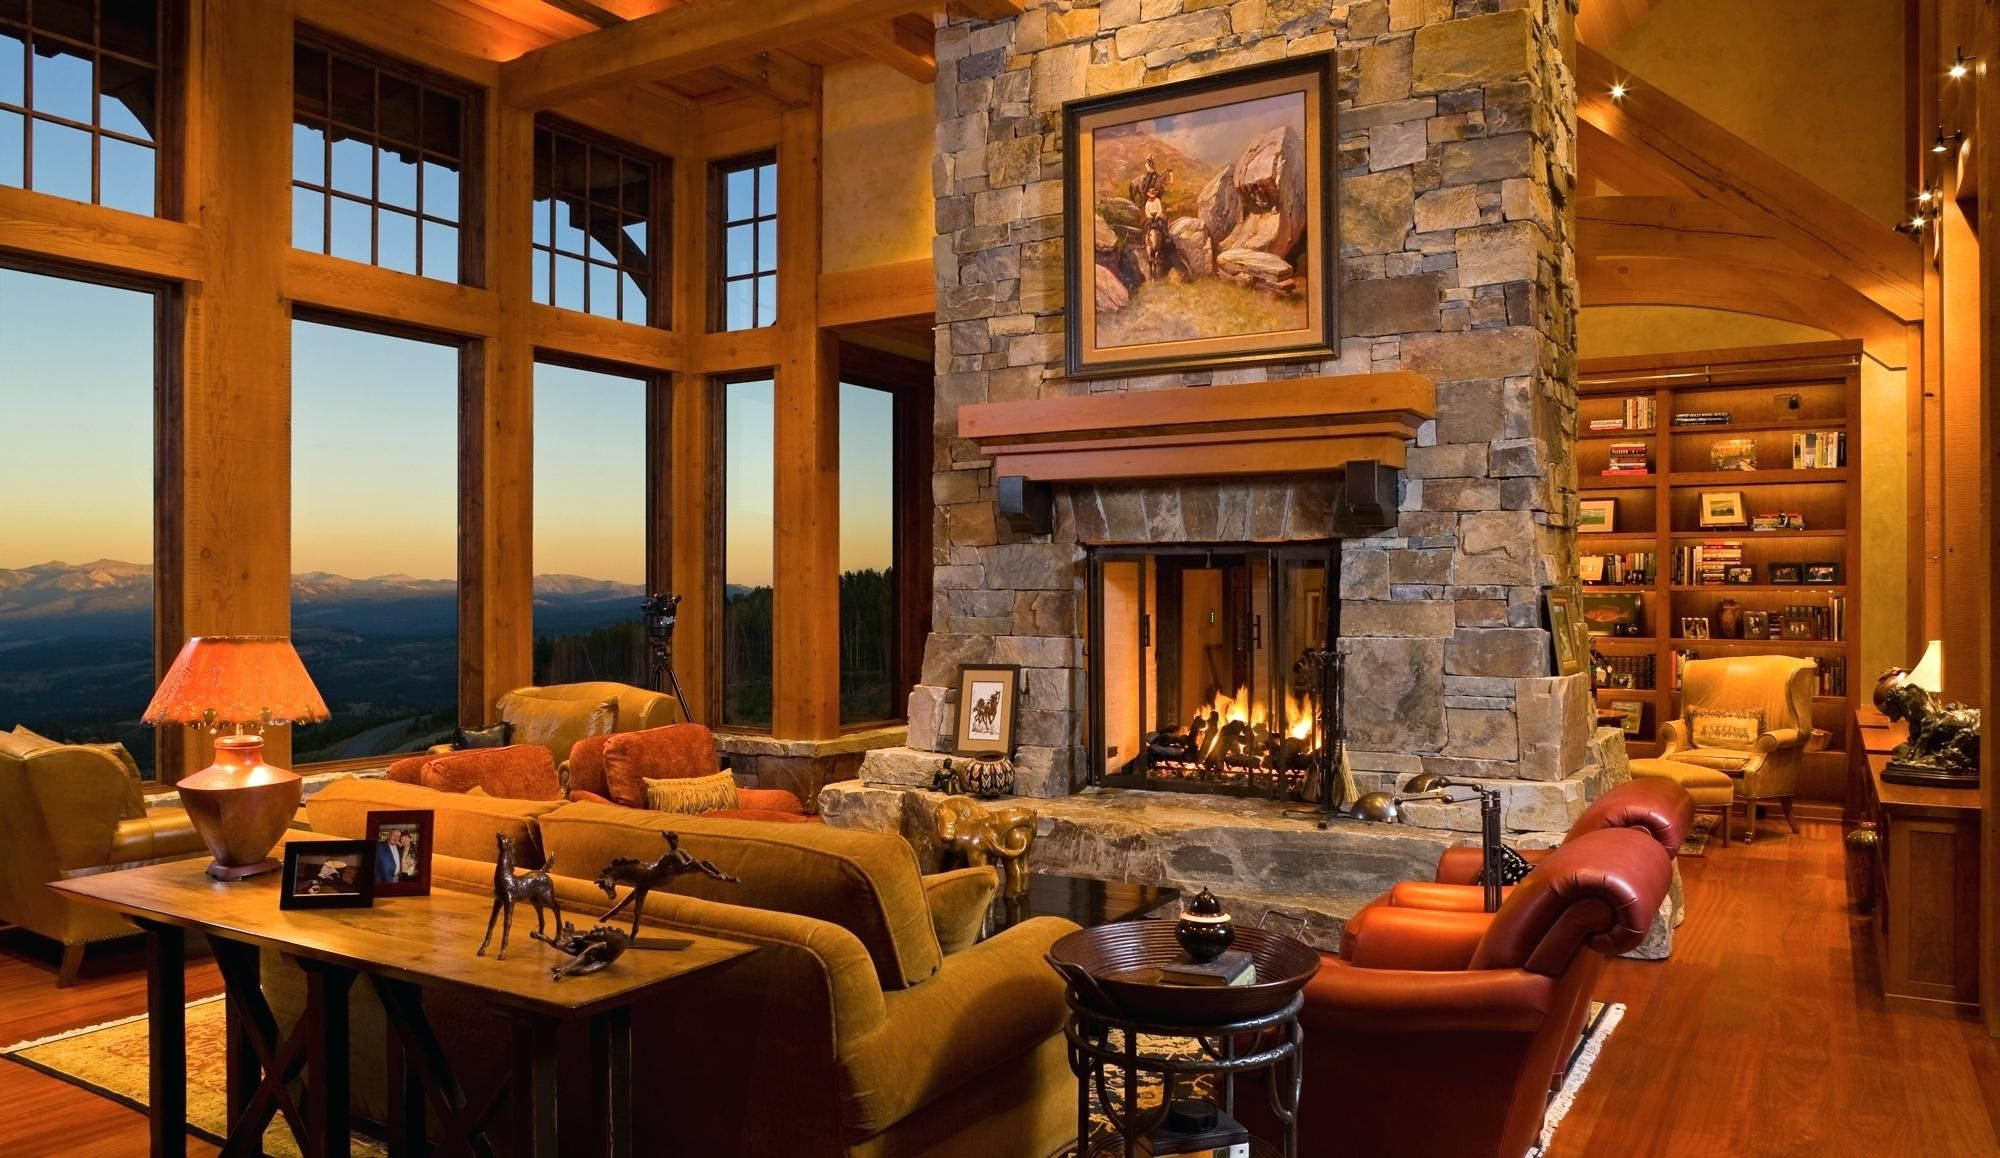 Central Stone Fireplace Home Fireplace Home House De